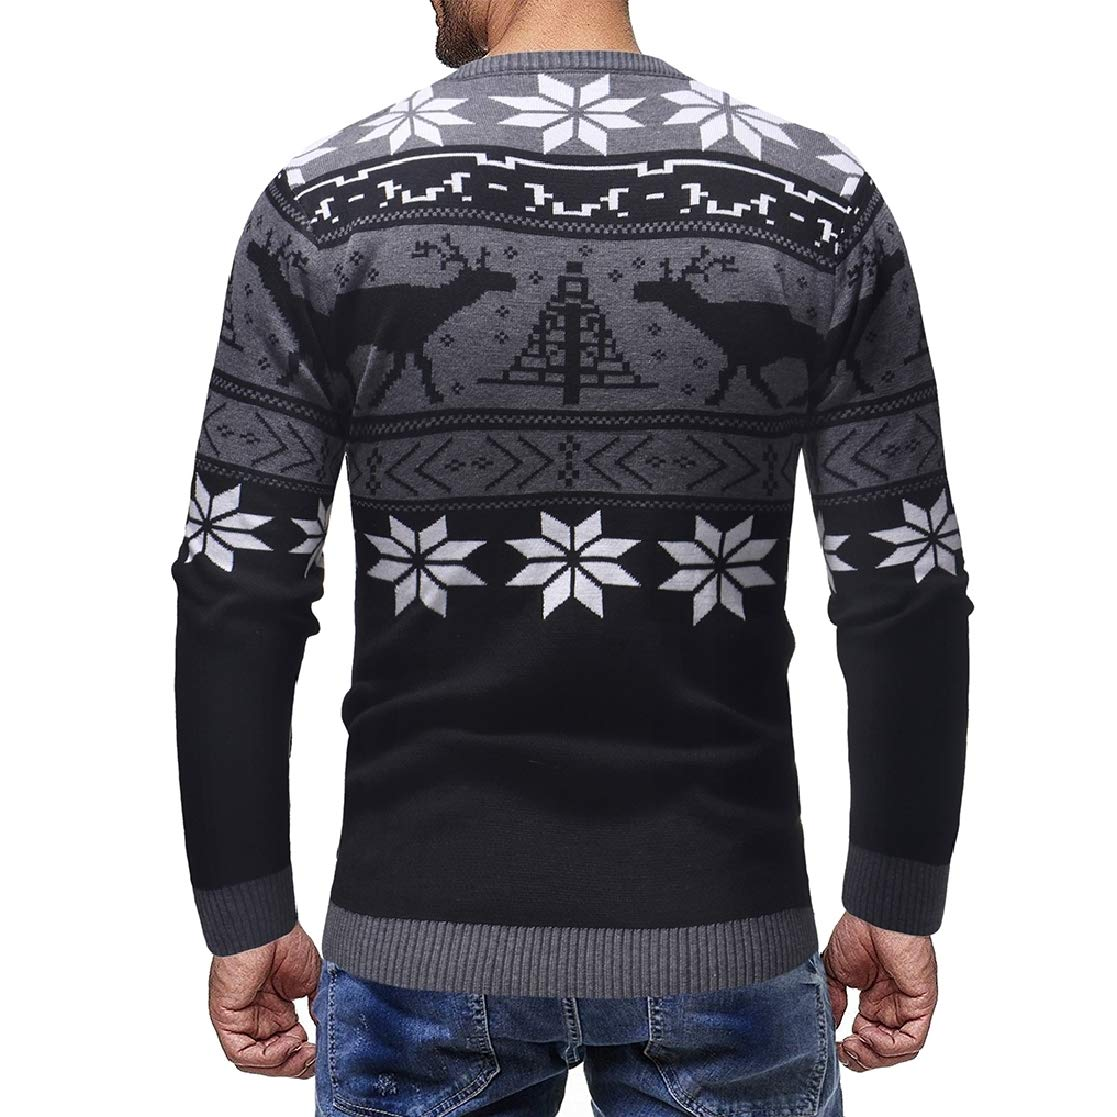 YUNY Mens O-Neck Chirstmas Leisure Long-Sleeved Comfort Business Knitwear Black L